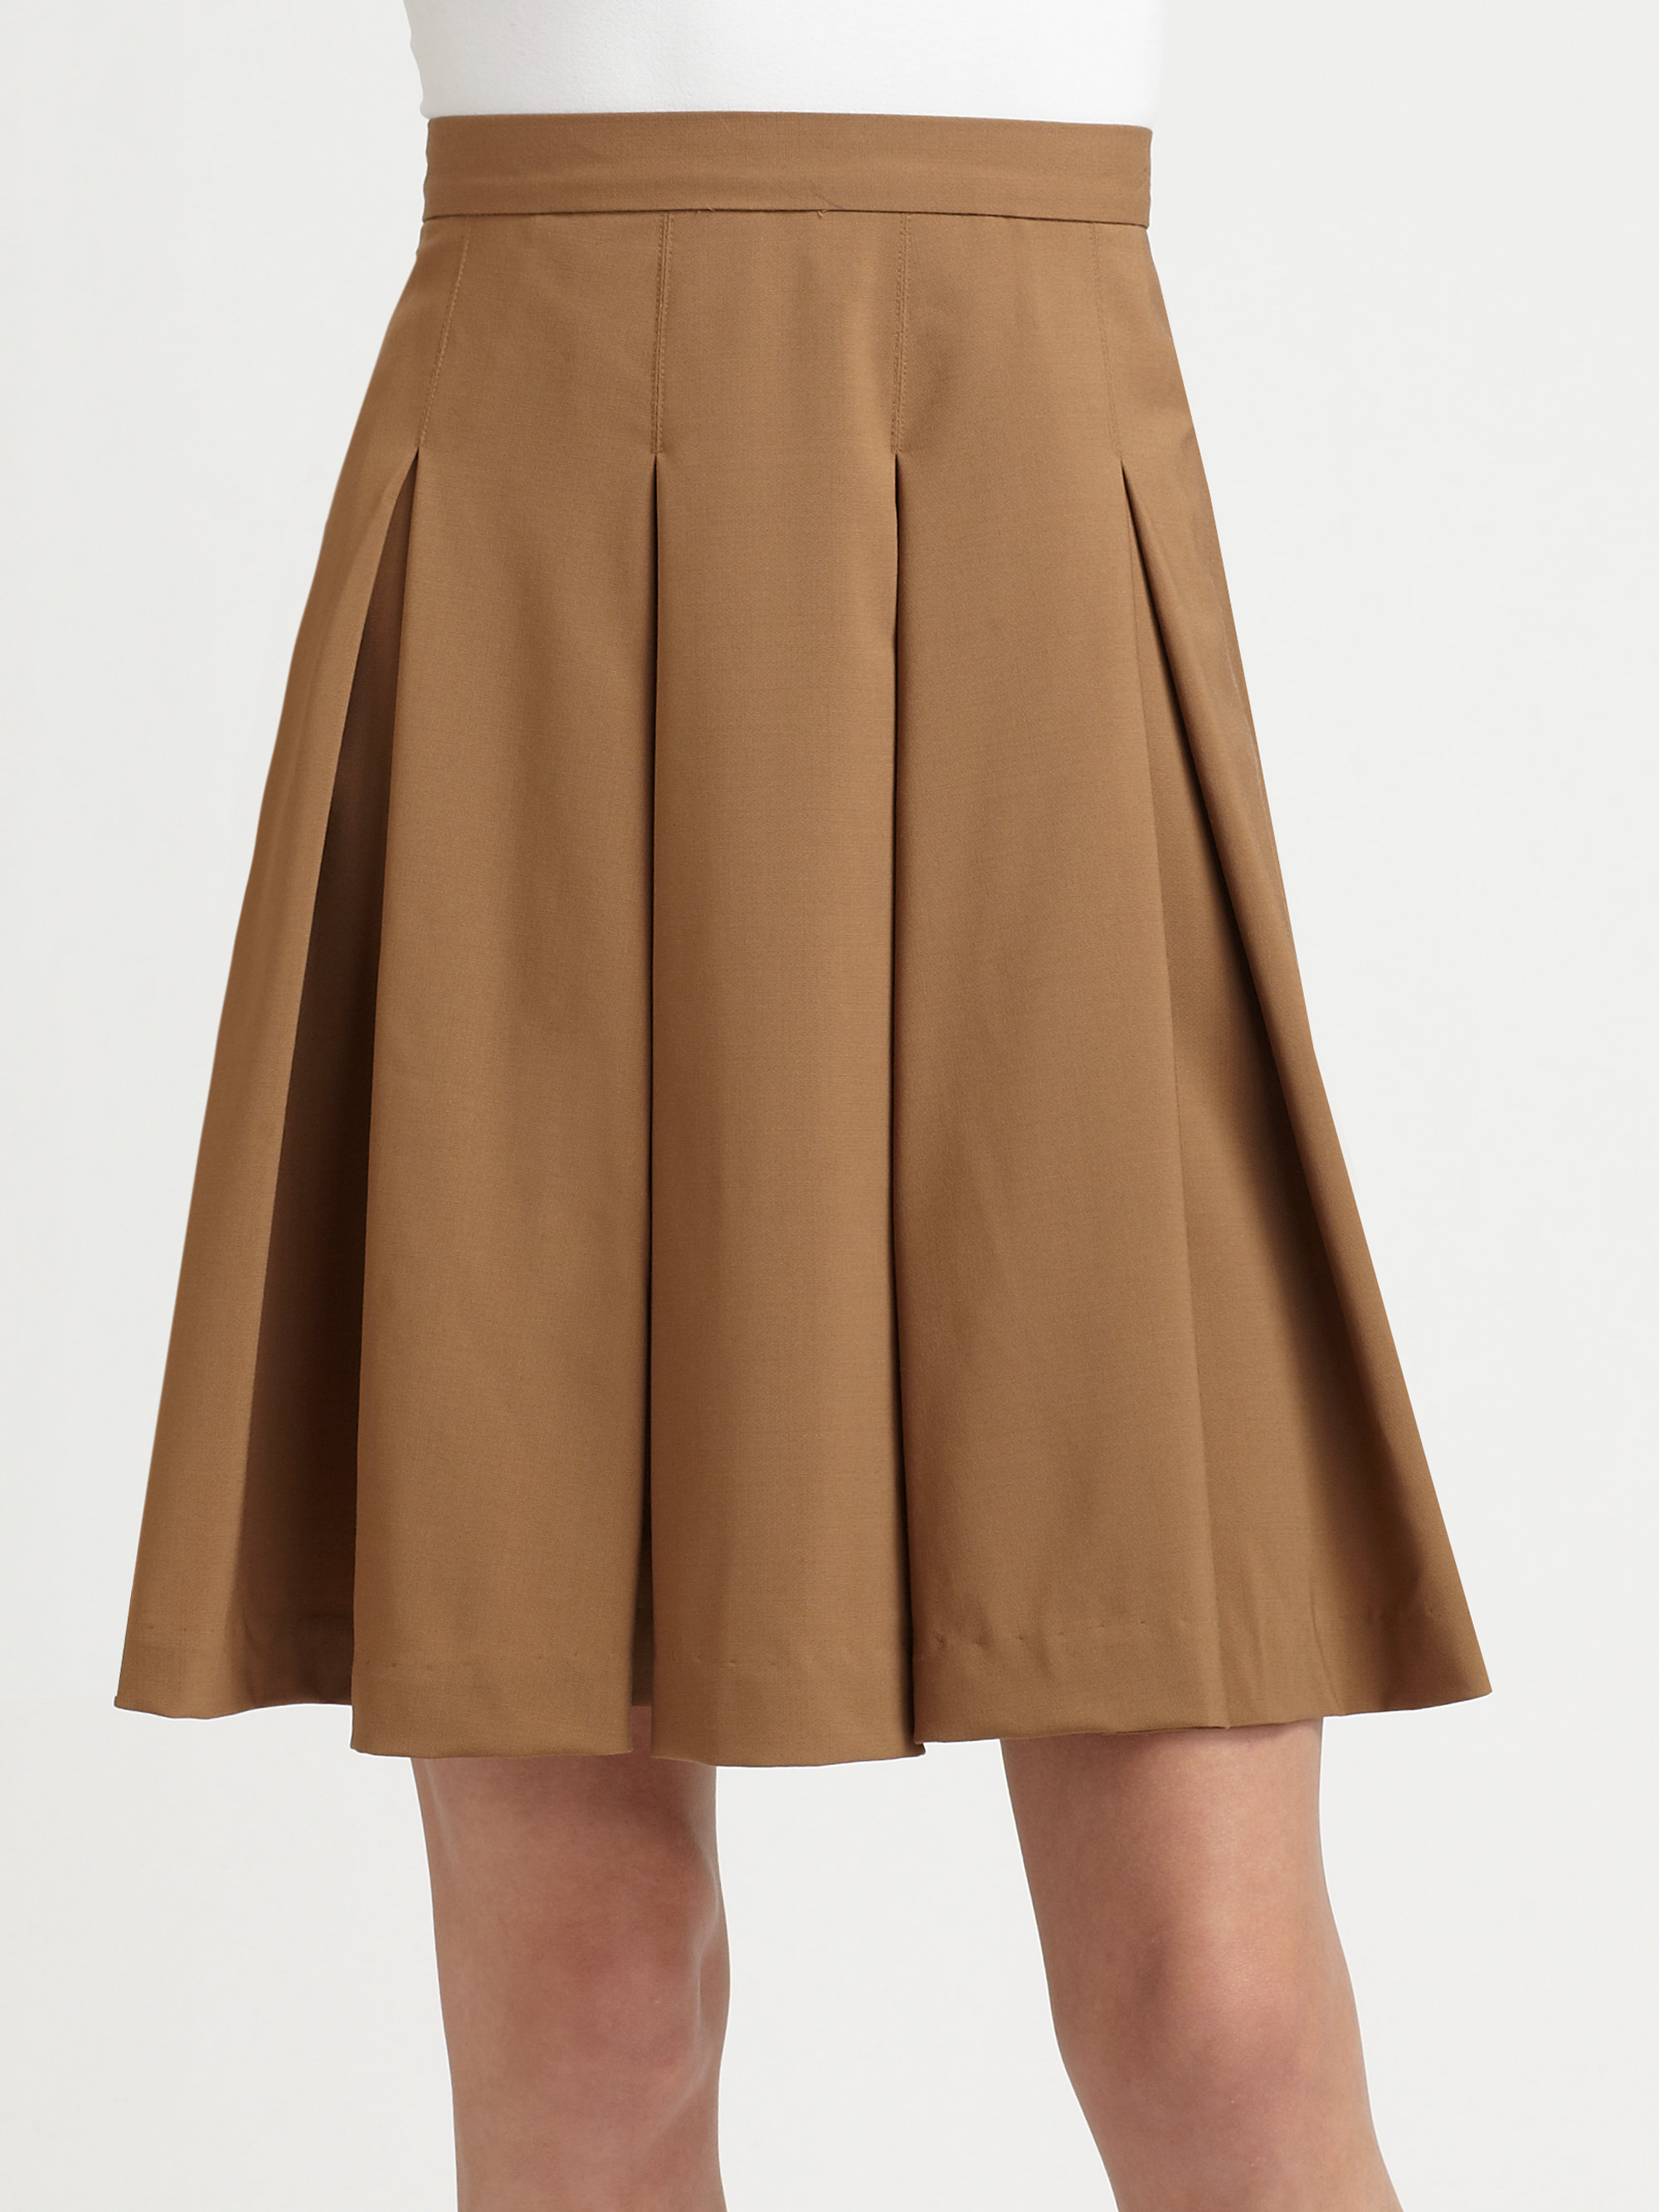 Alice   olivia Louise Box Pleat Skirt in Brown | Lyst